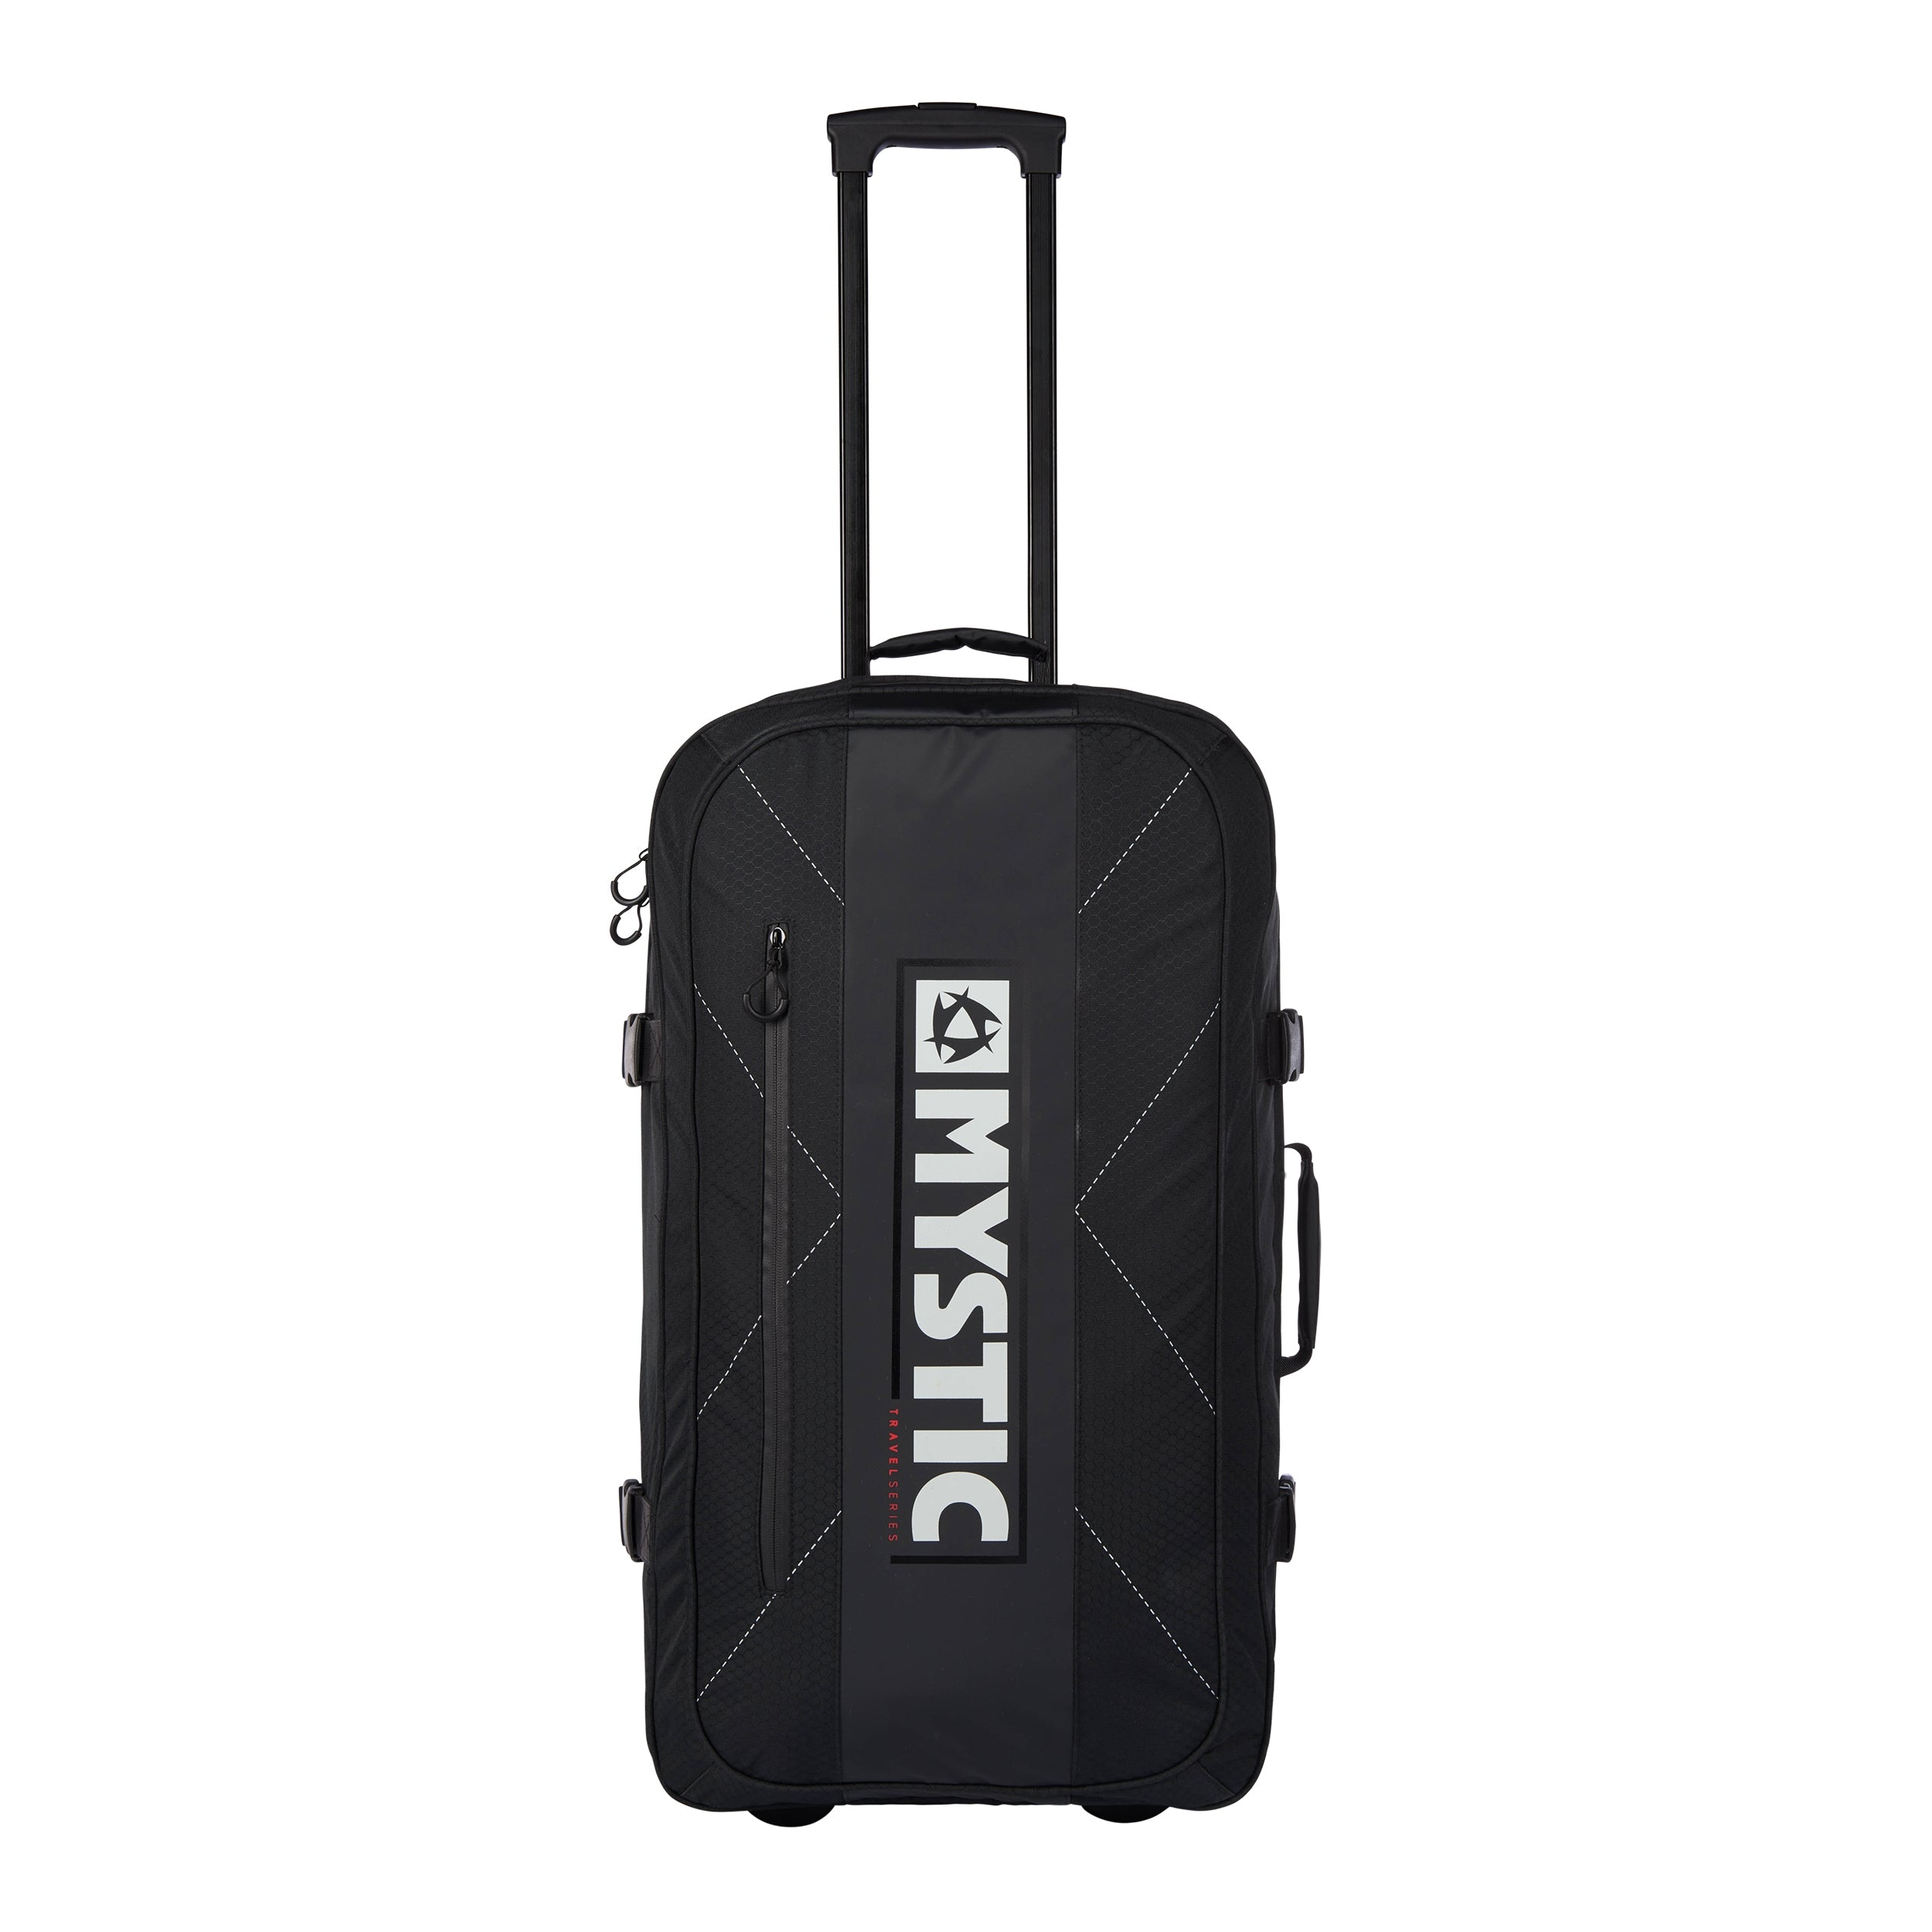 Mystic Globe Trotter Travel Bag with Wheels